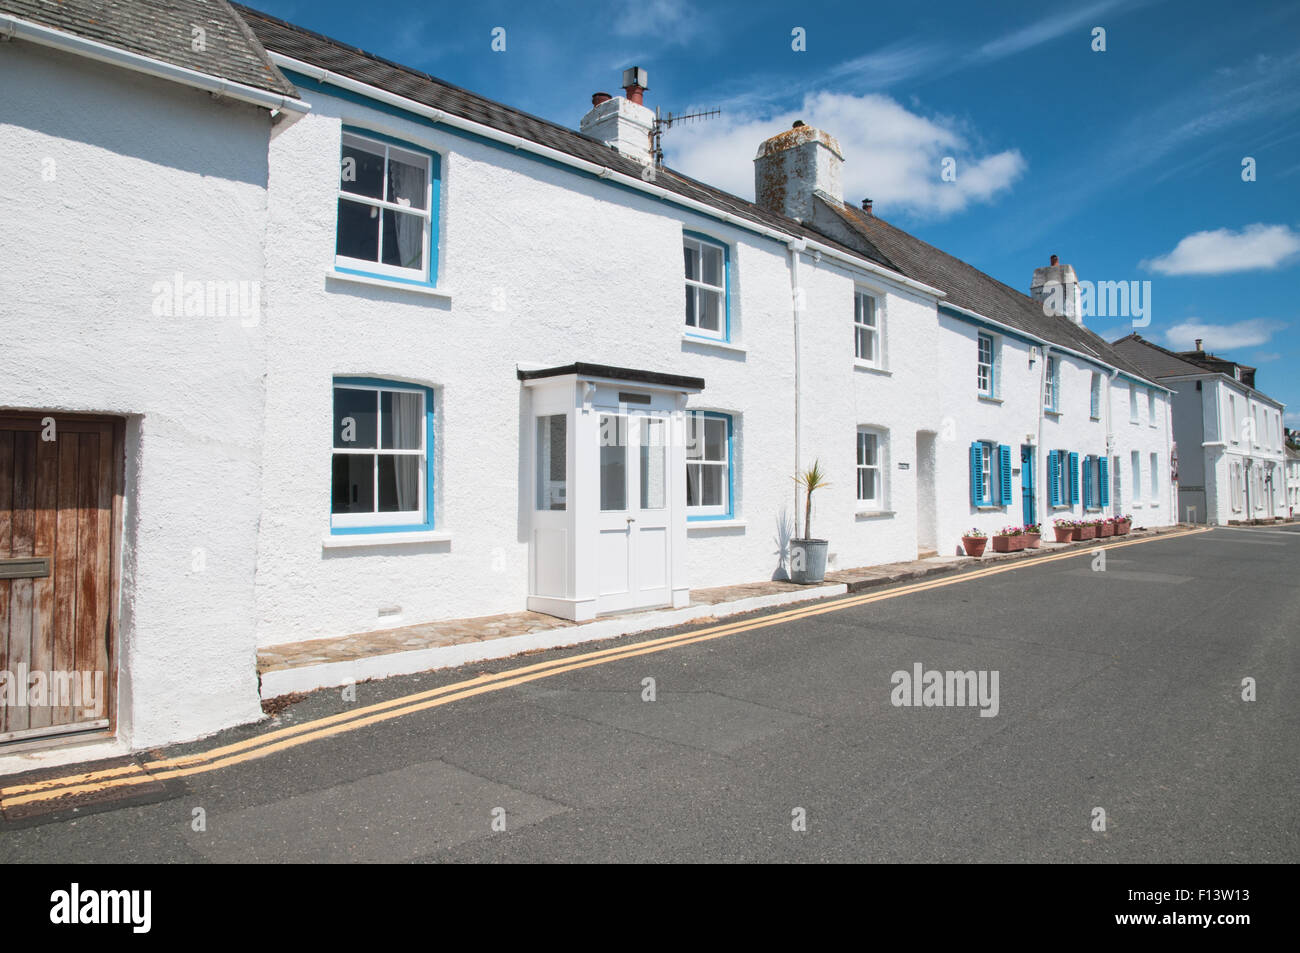 Old fishermens cottages St Mawes Cornwall England - Stock Image